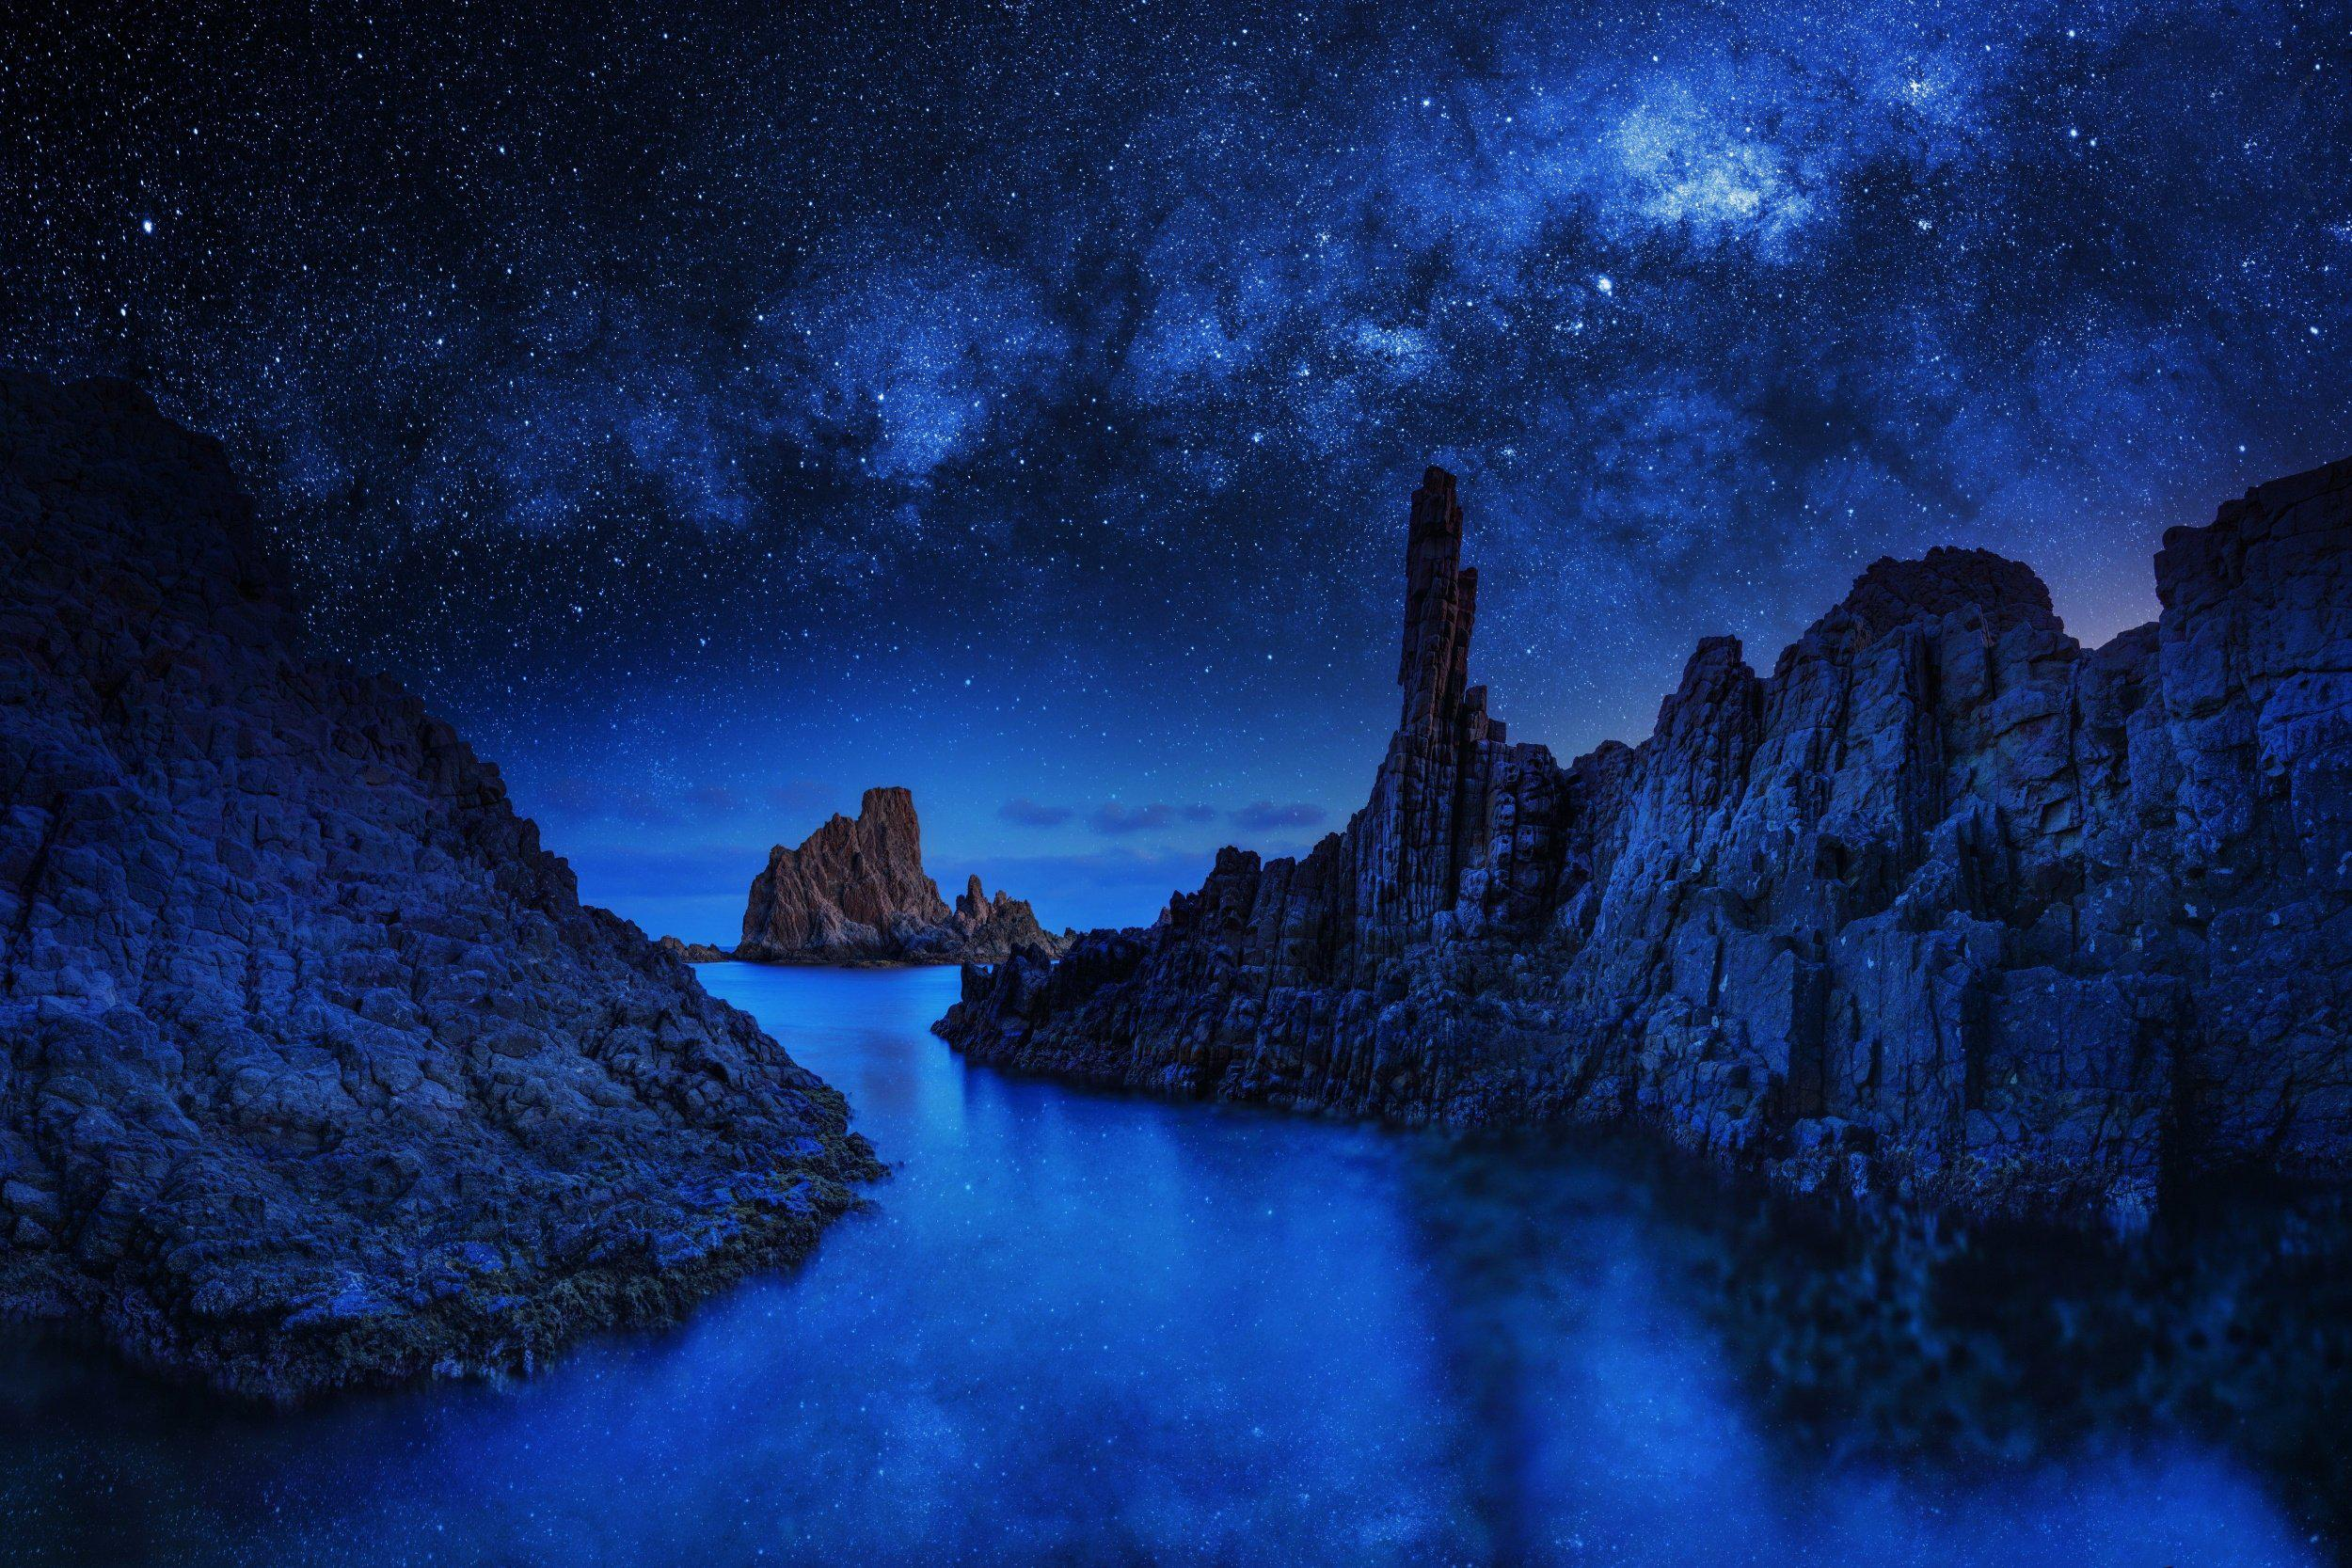 night blue rivers with night clouds hd image picture download